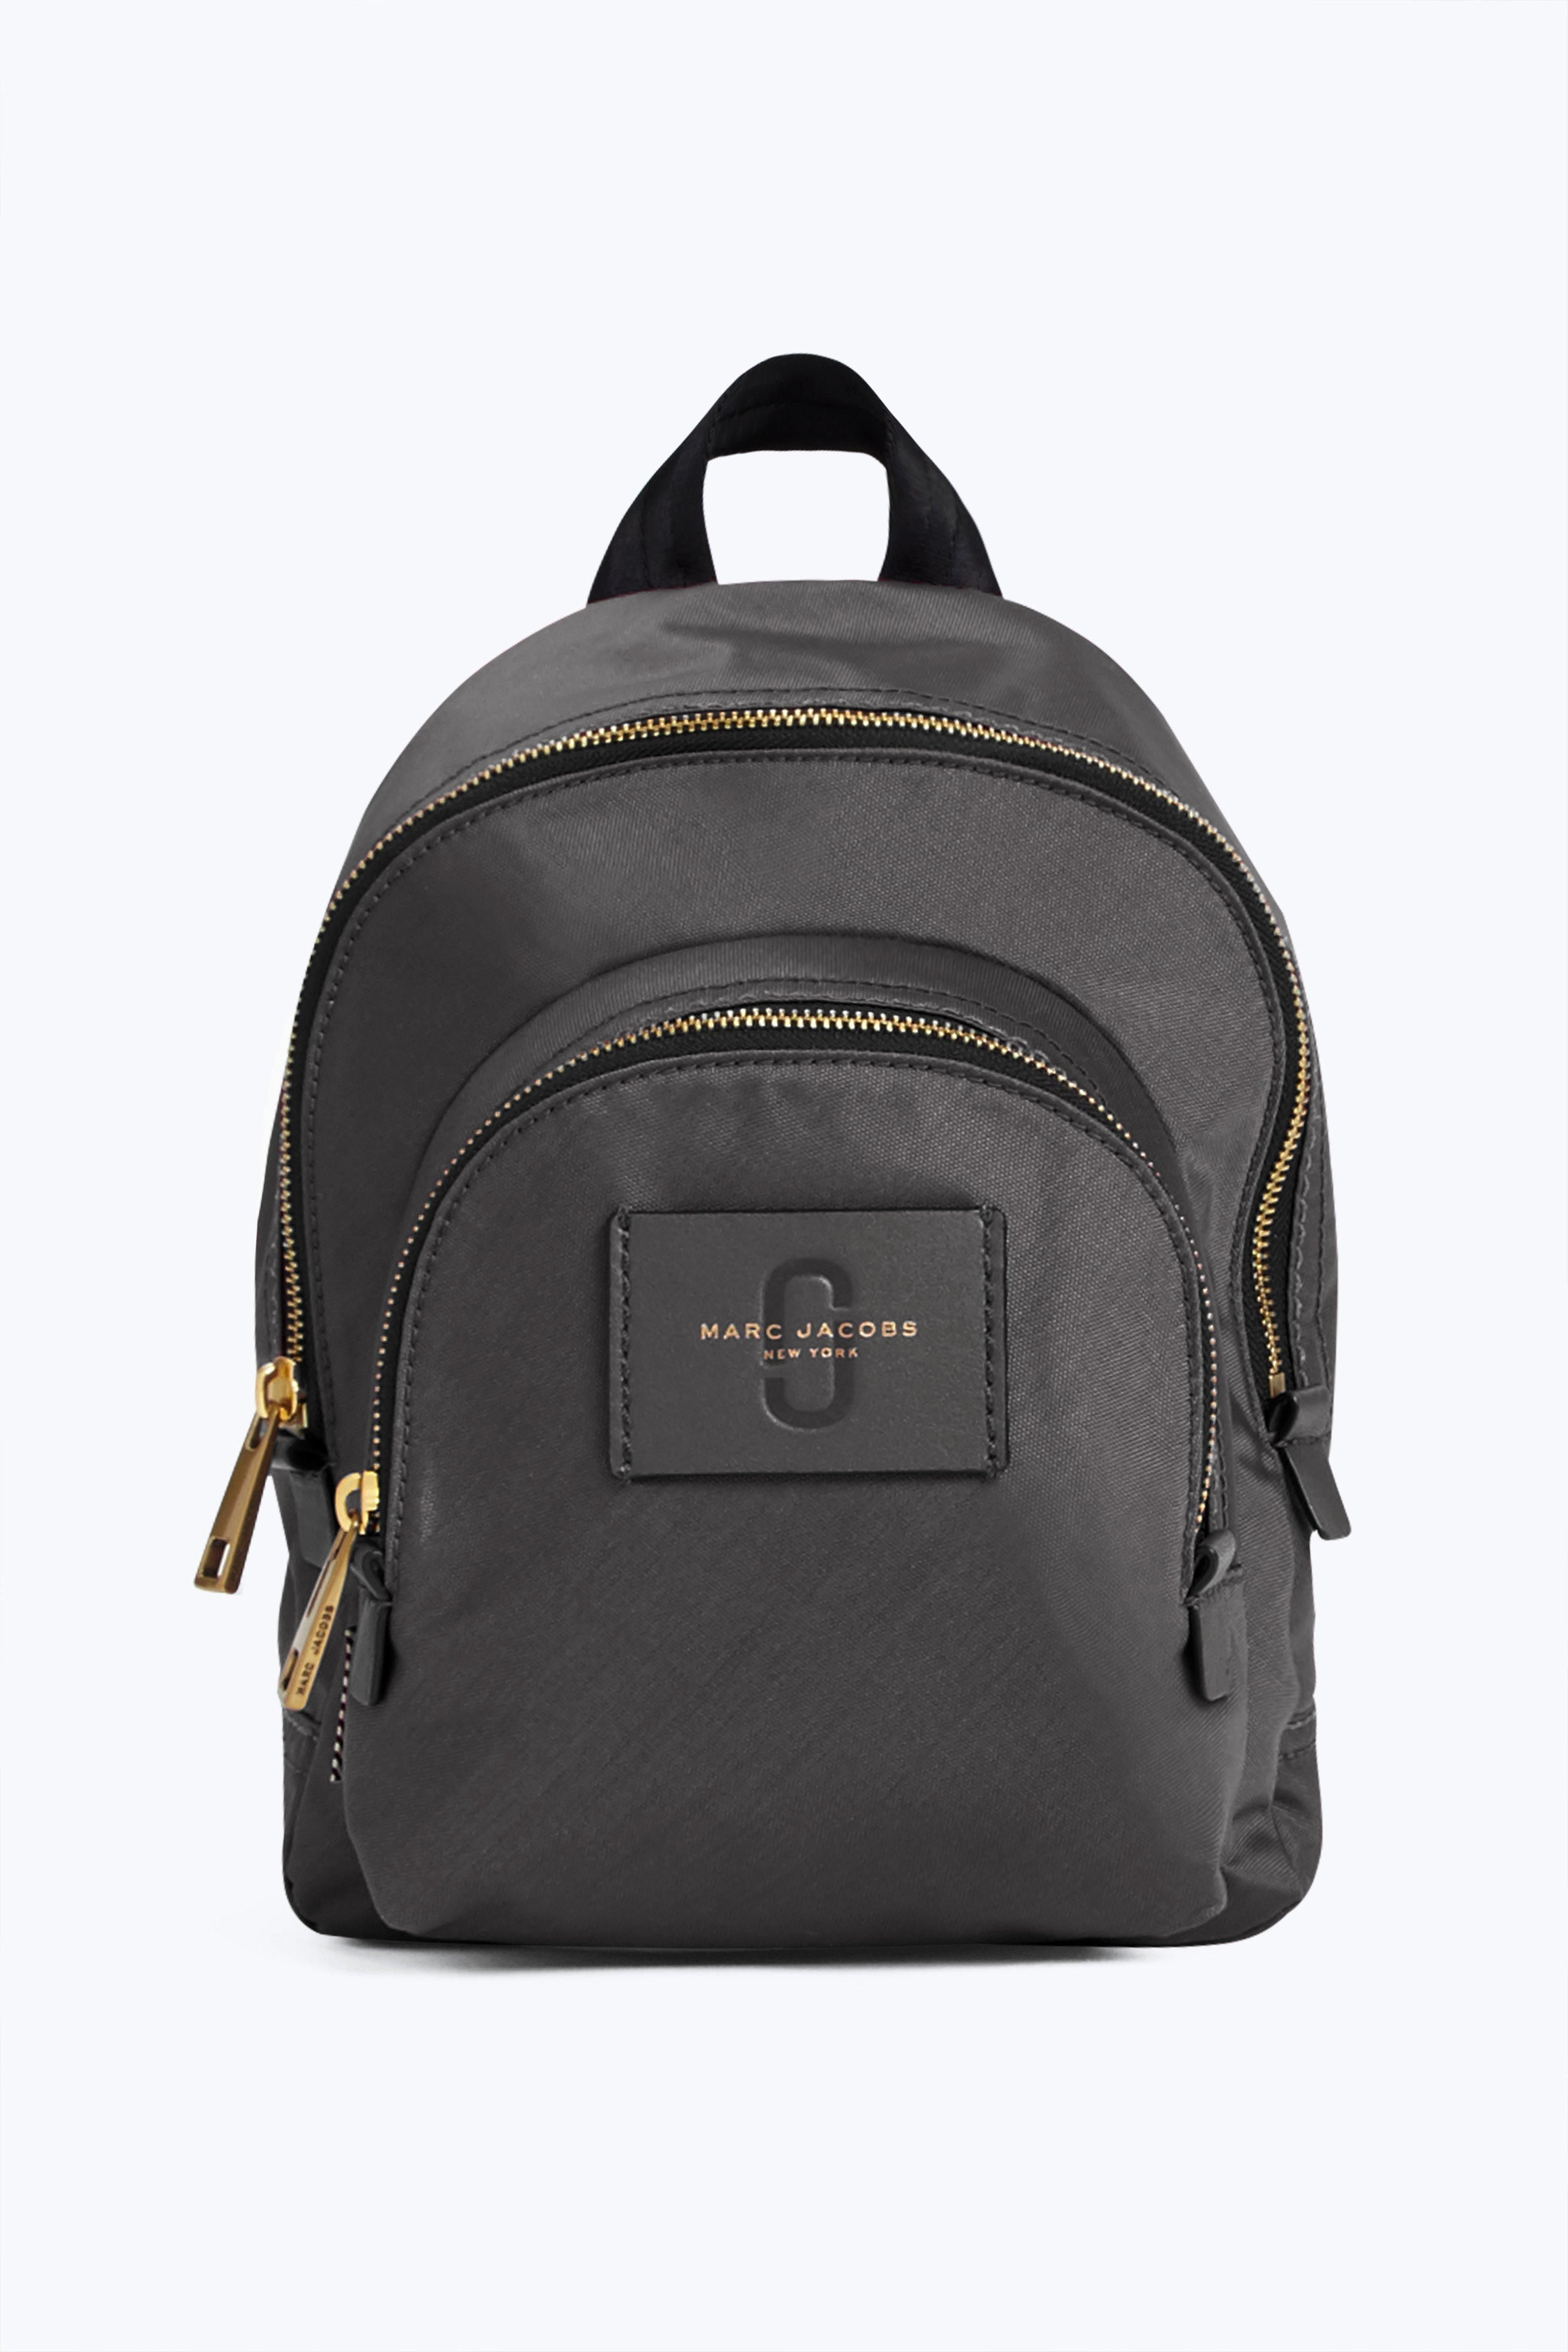 Marc Jacobs Mini Double Zip Pack Marcjacobs Bags Leather Nylon Backpacks